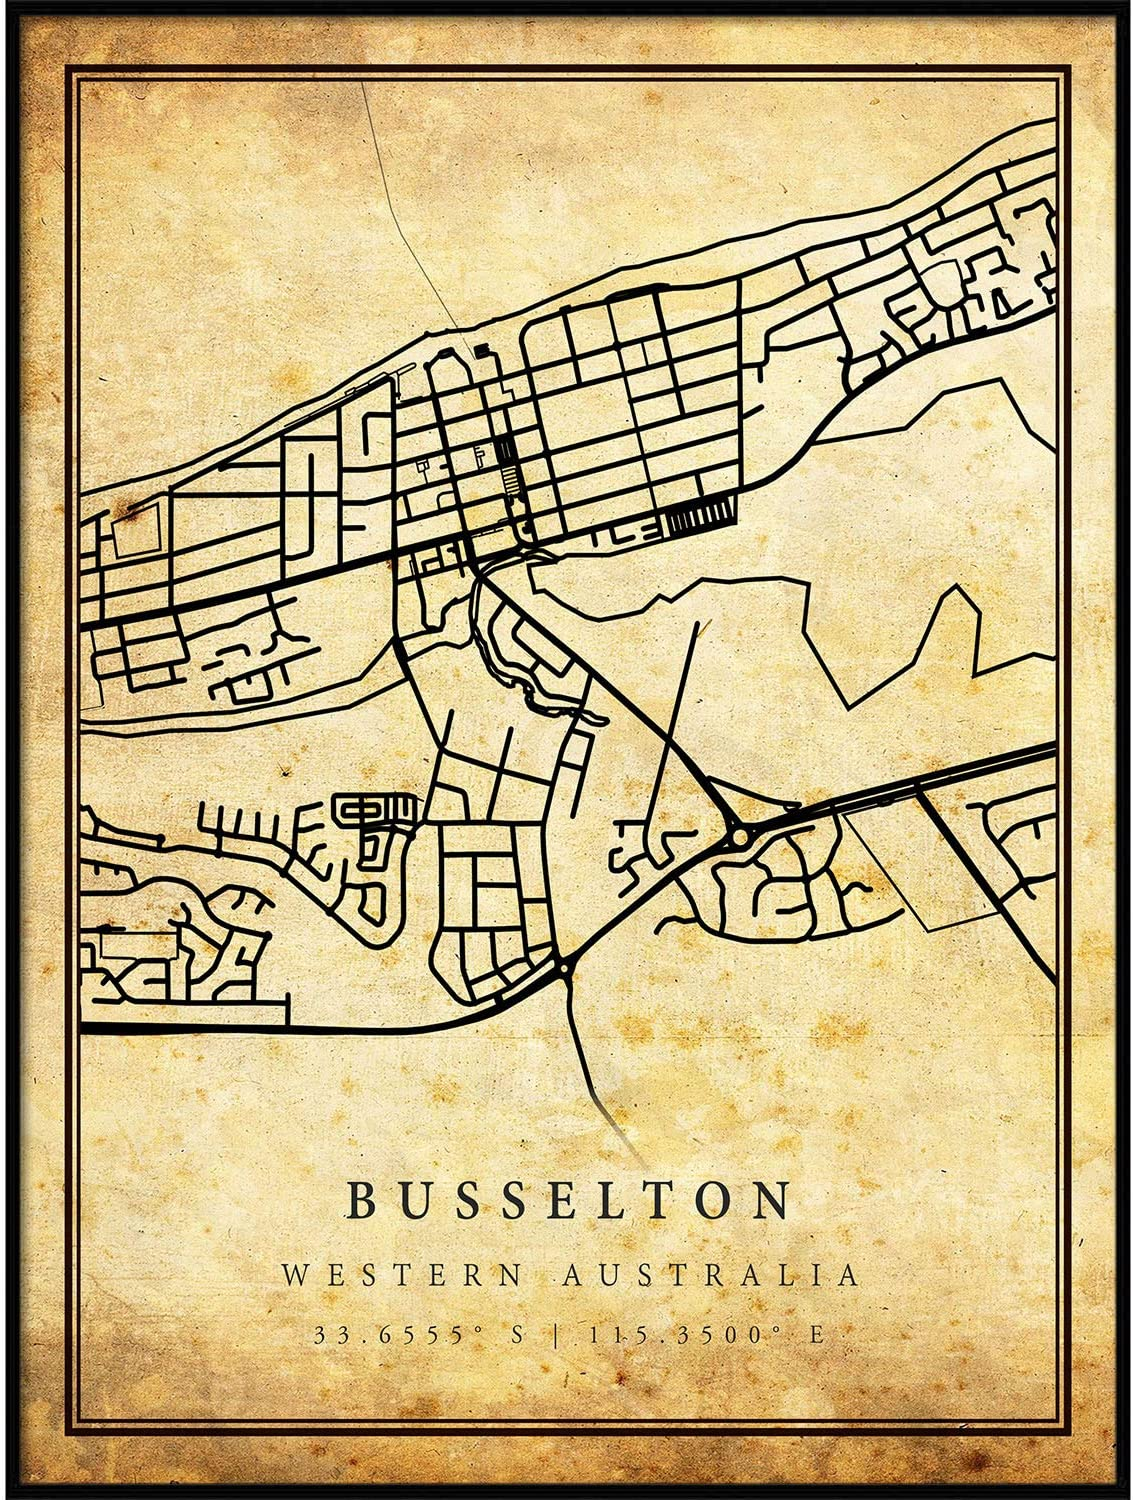 Busselton map Vintage Style Poster Print   Old City Artwork Prints   Antique Style Home Decor   Western Australia Wall Art Gift   Historical map 8.5x11